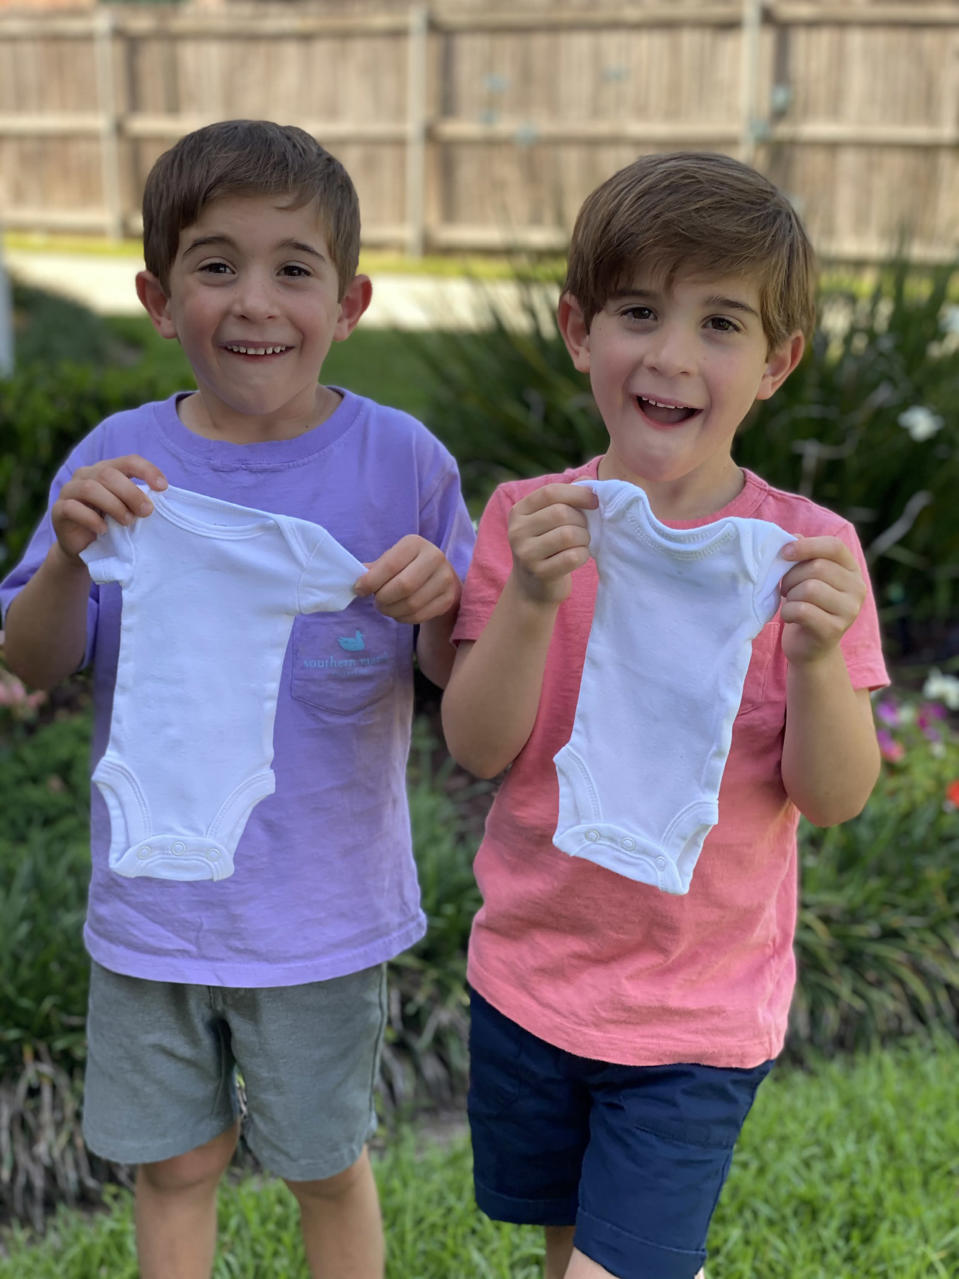 Identical twin brothers Grant and Cooper Credo welcomed identical twin sisters in September 2020. (Erin Credo)